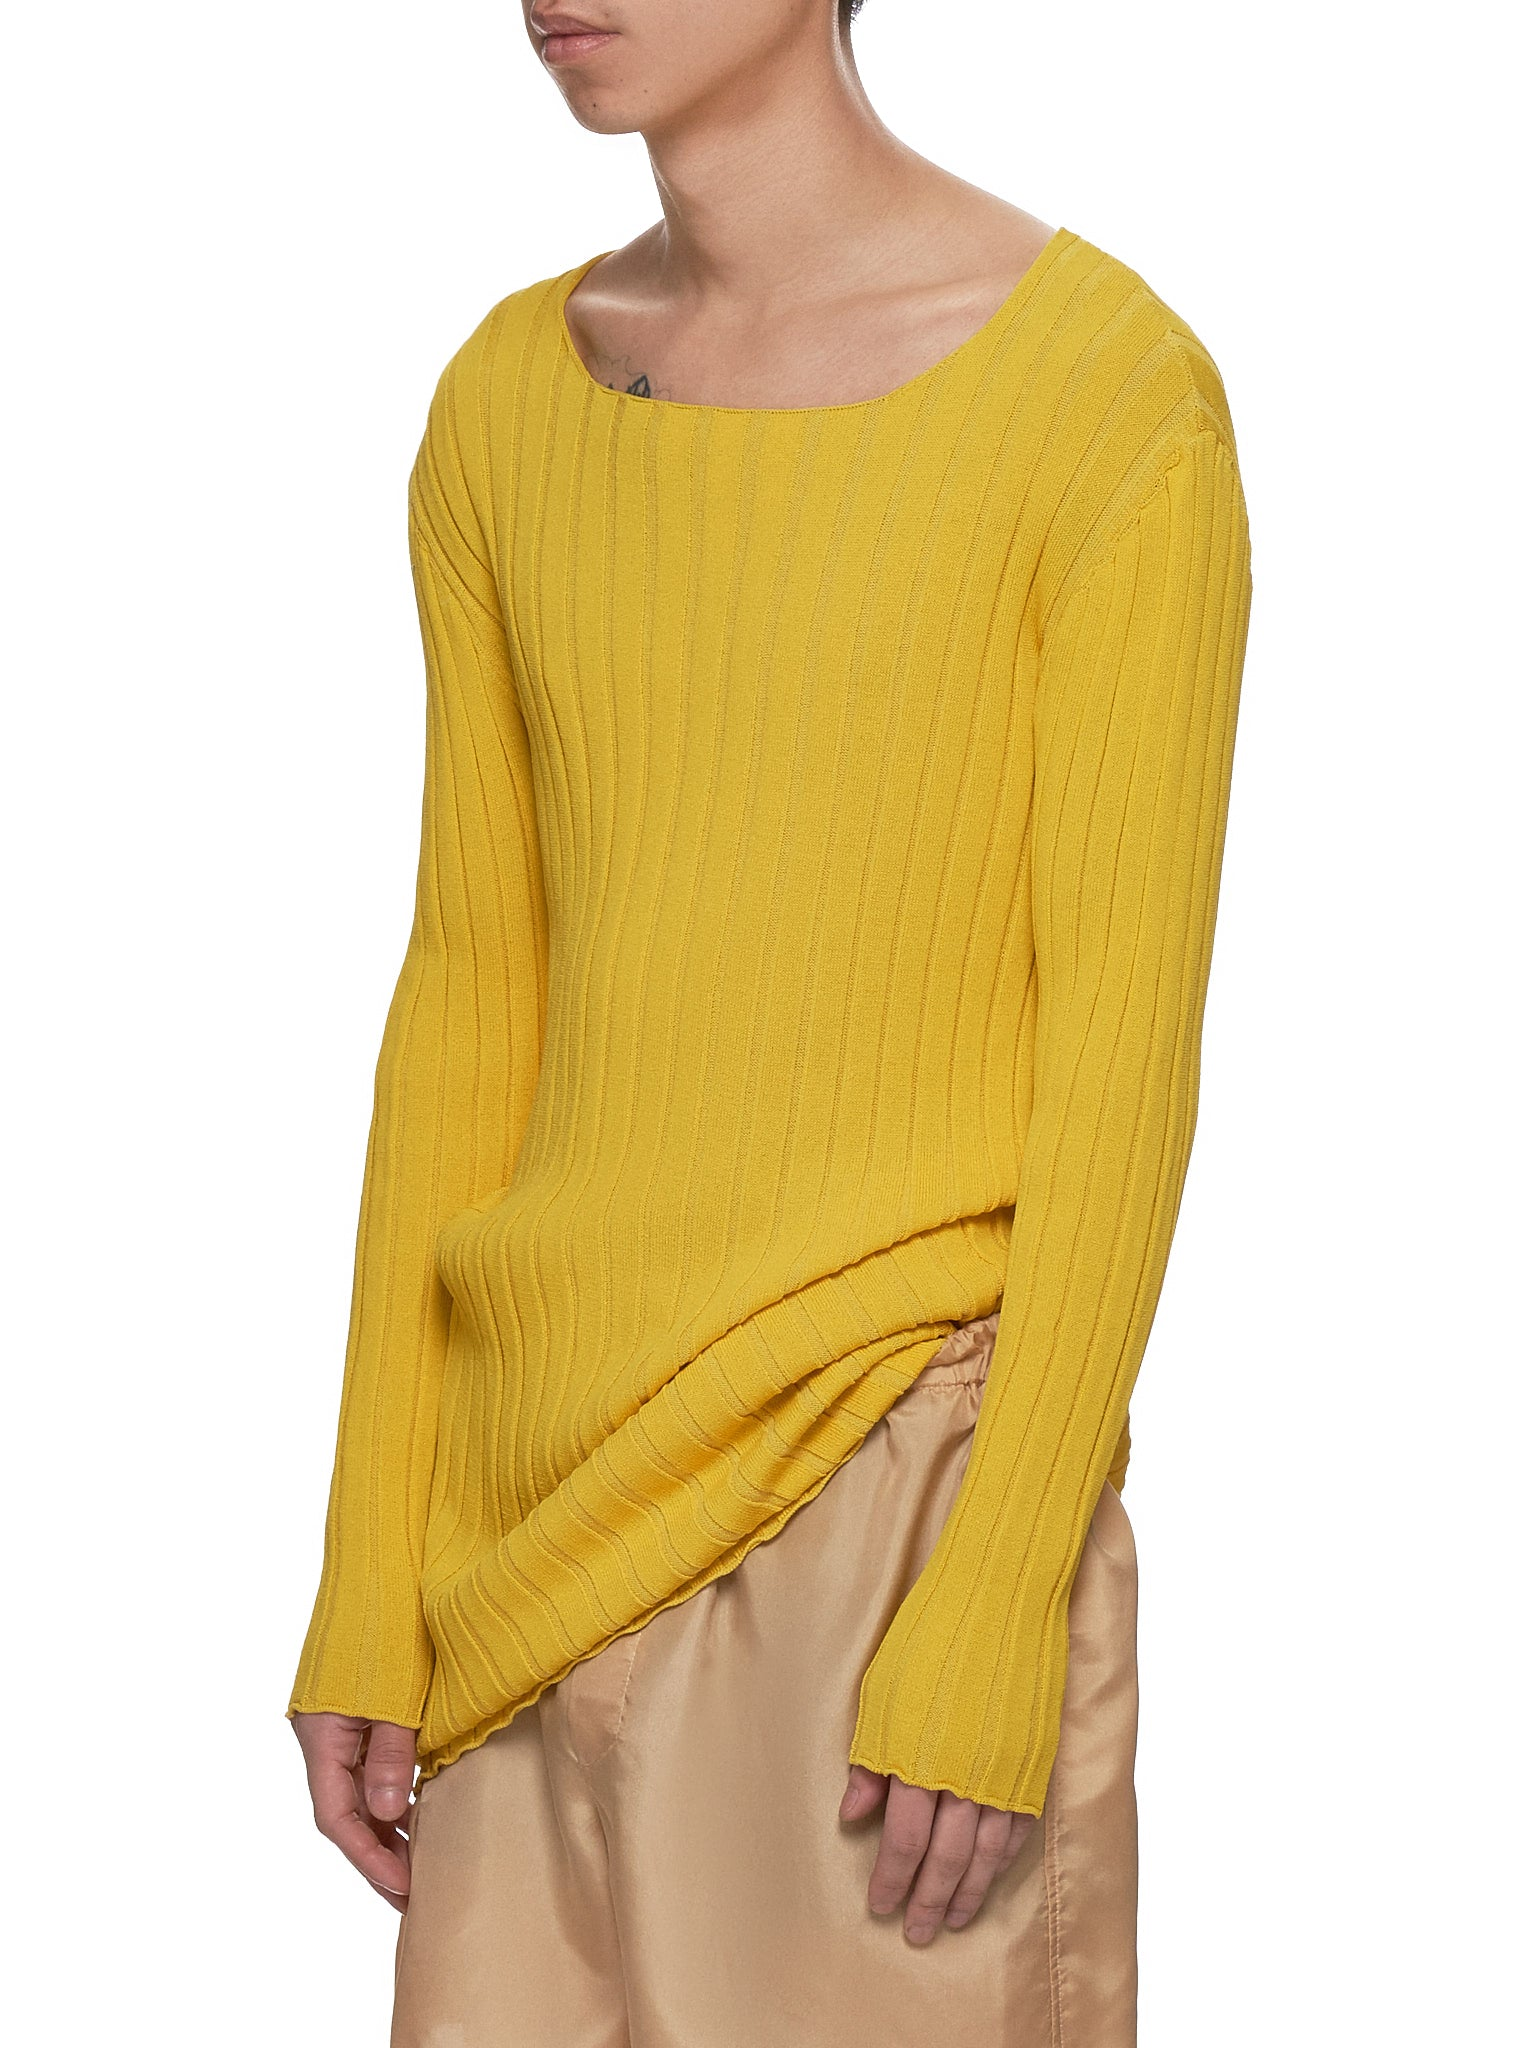 Ludovic de Saint Sernin Sweater - Hlorenzo Side